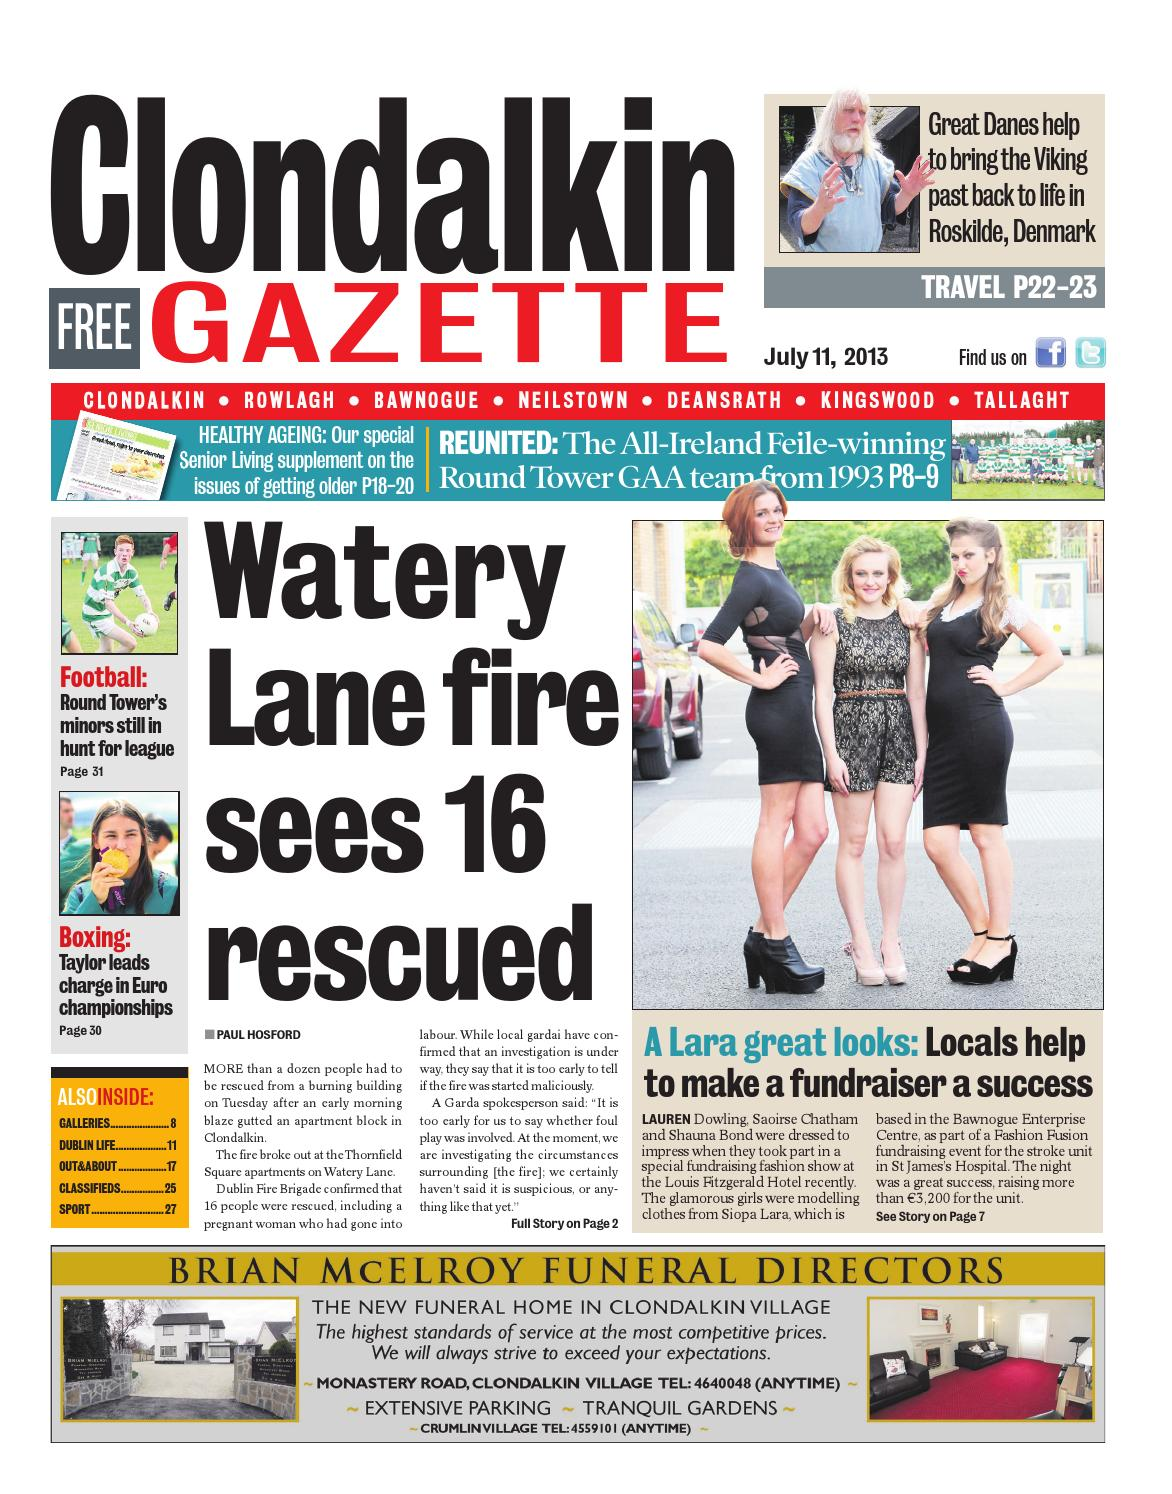 Pleasant Day in Clondalkin - Traveller Reviews - Corkagh